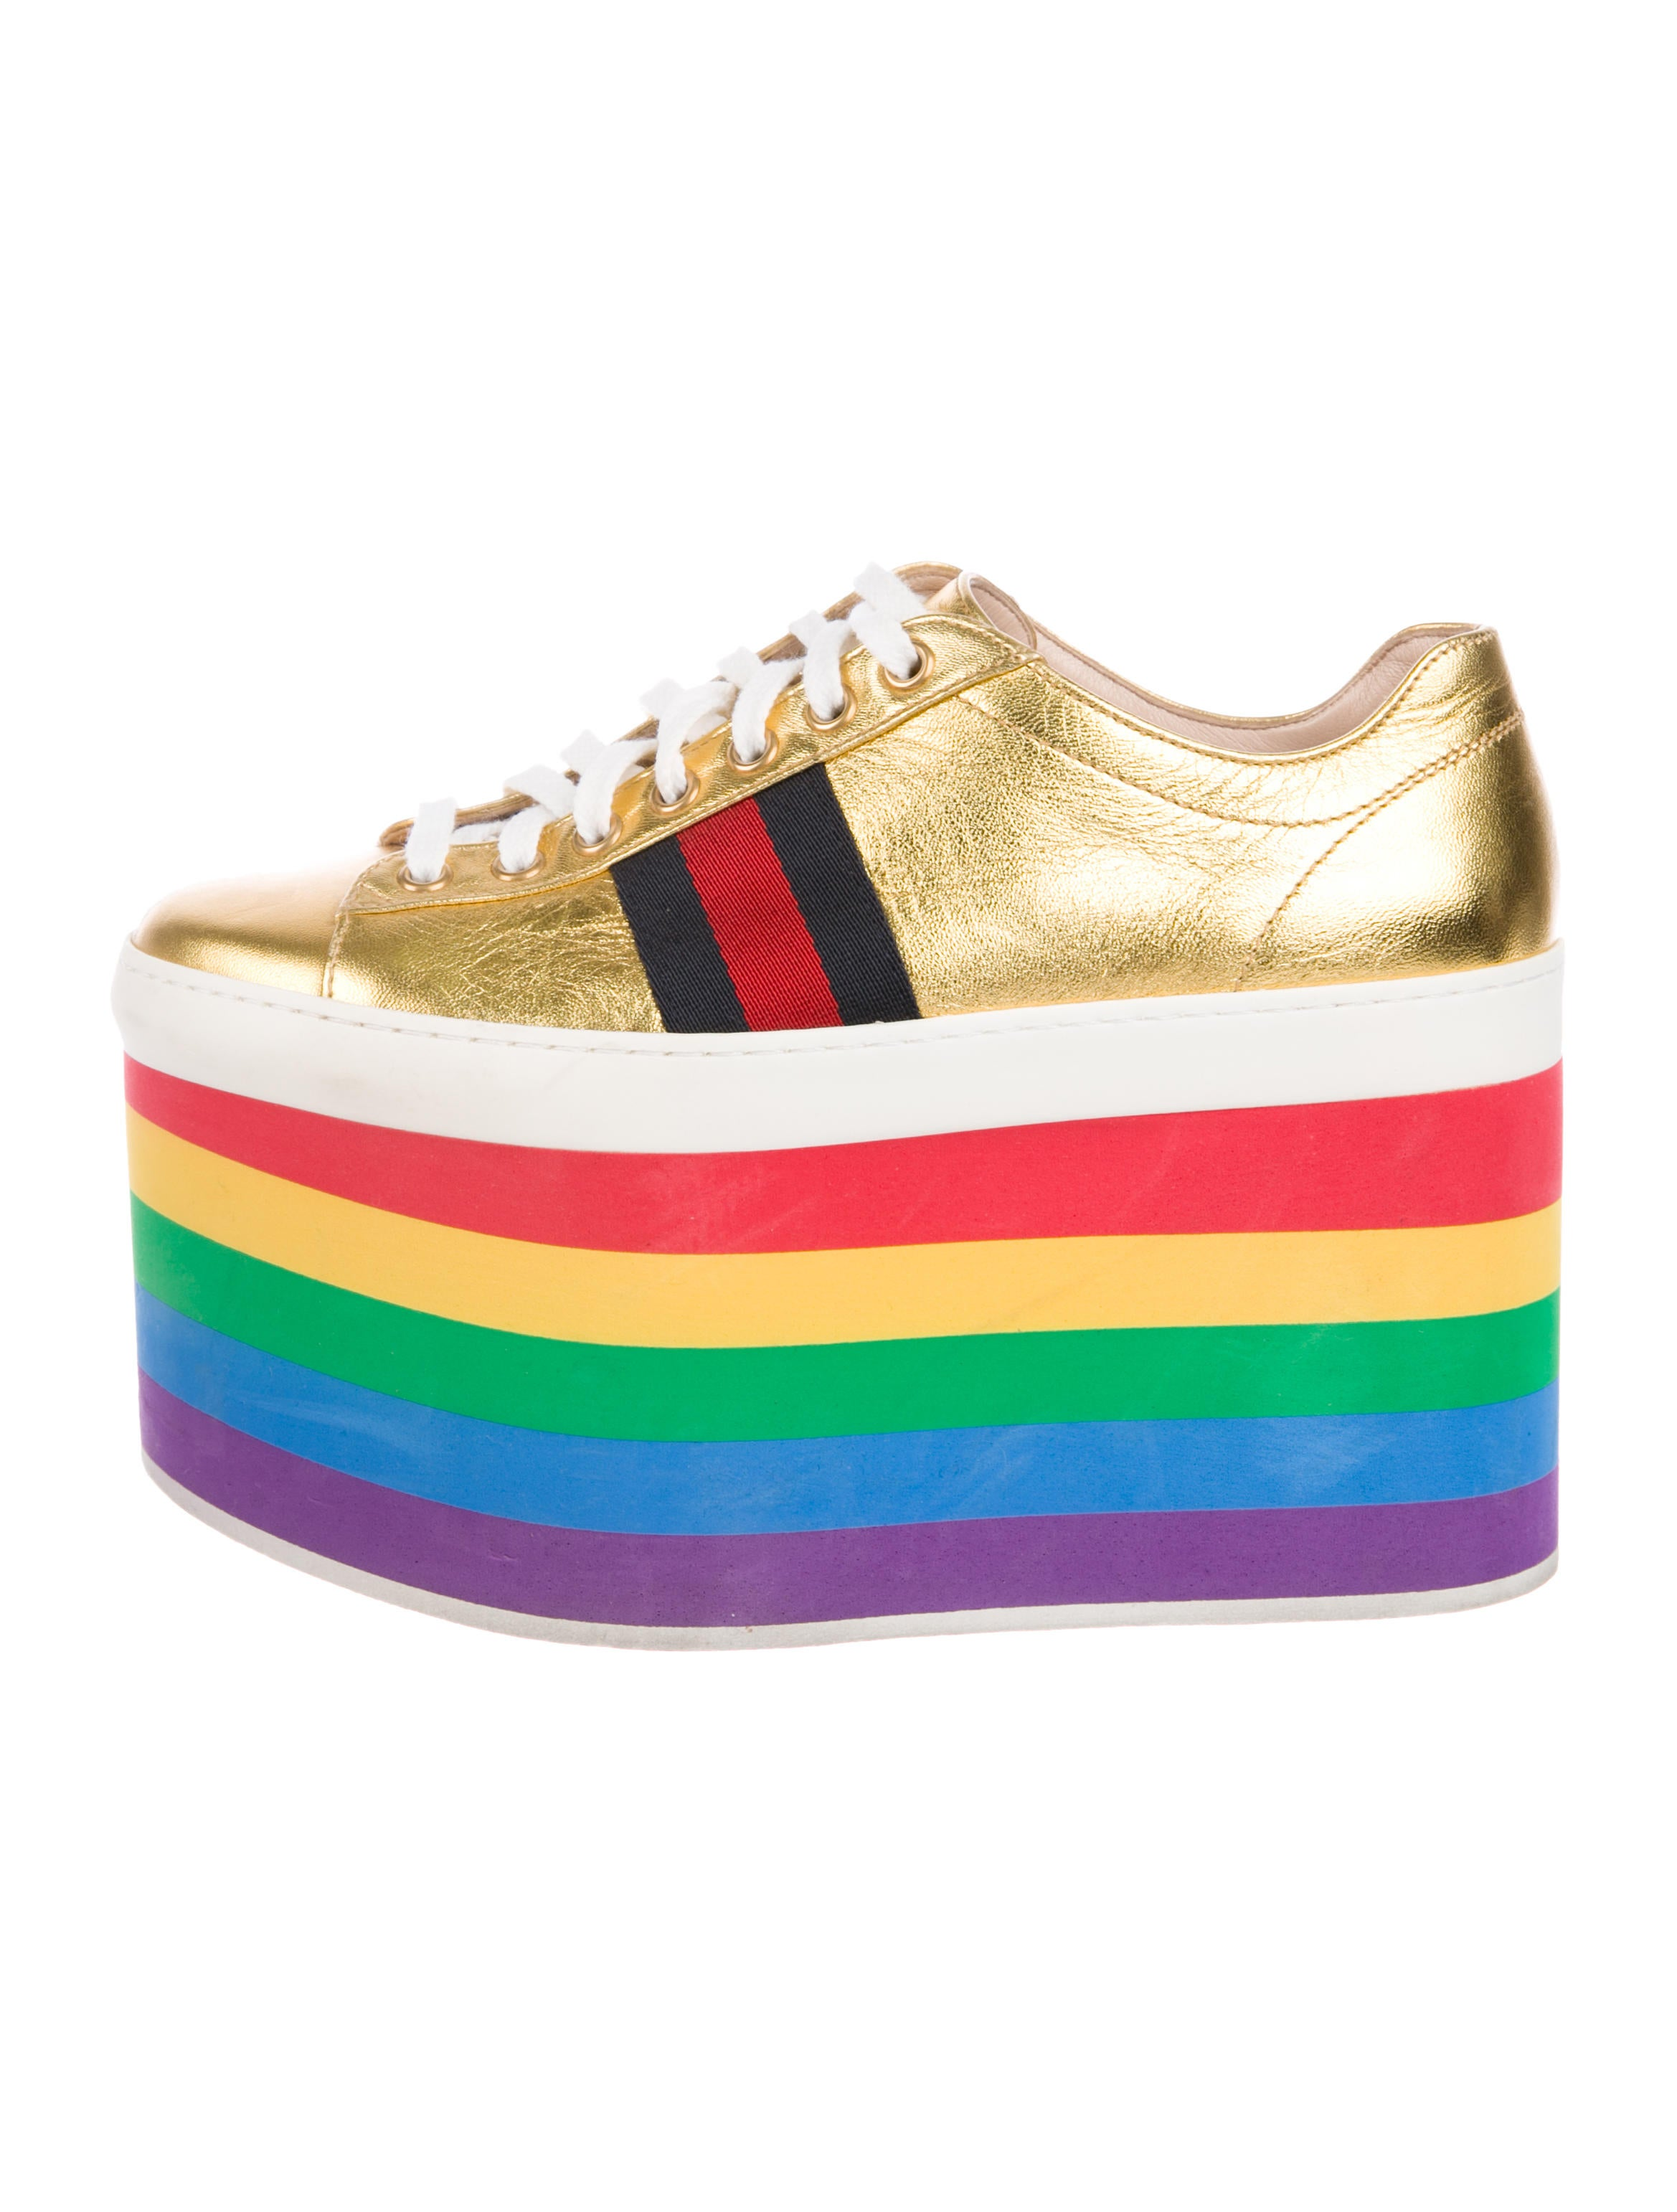 6975a9493b21 Gucci 2017 Peggy Metallic Platform Sneakers - Shoes - GUC283656 ...